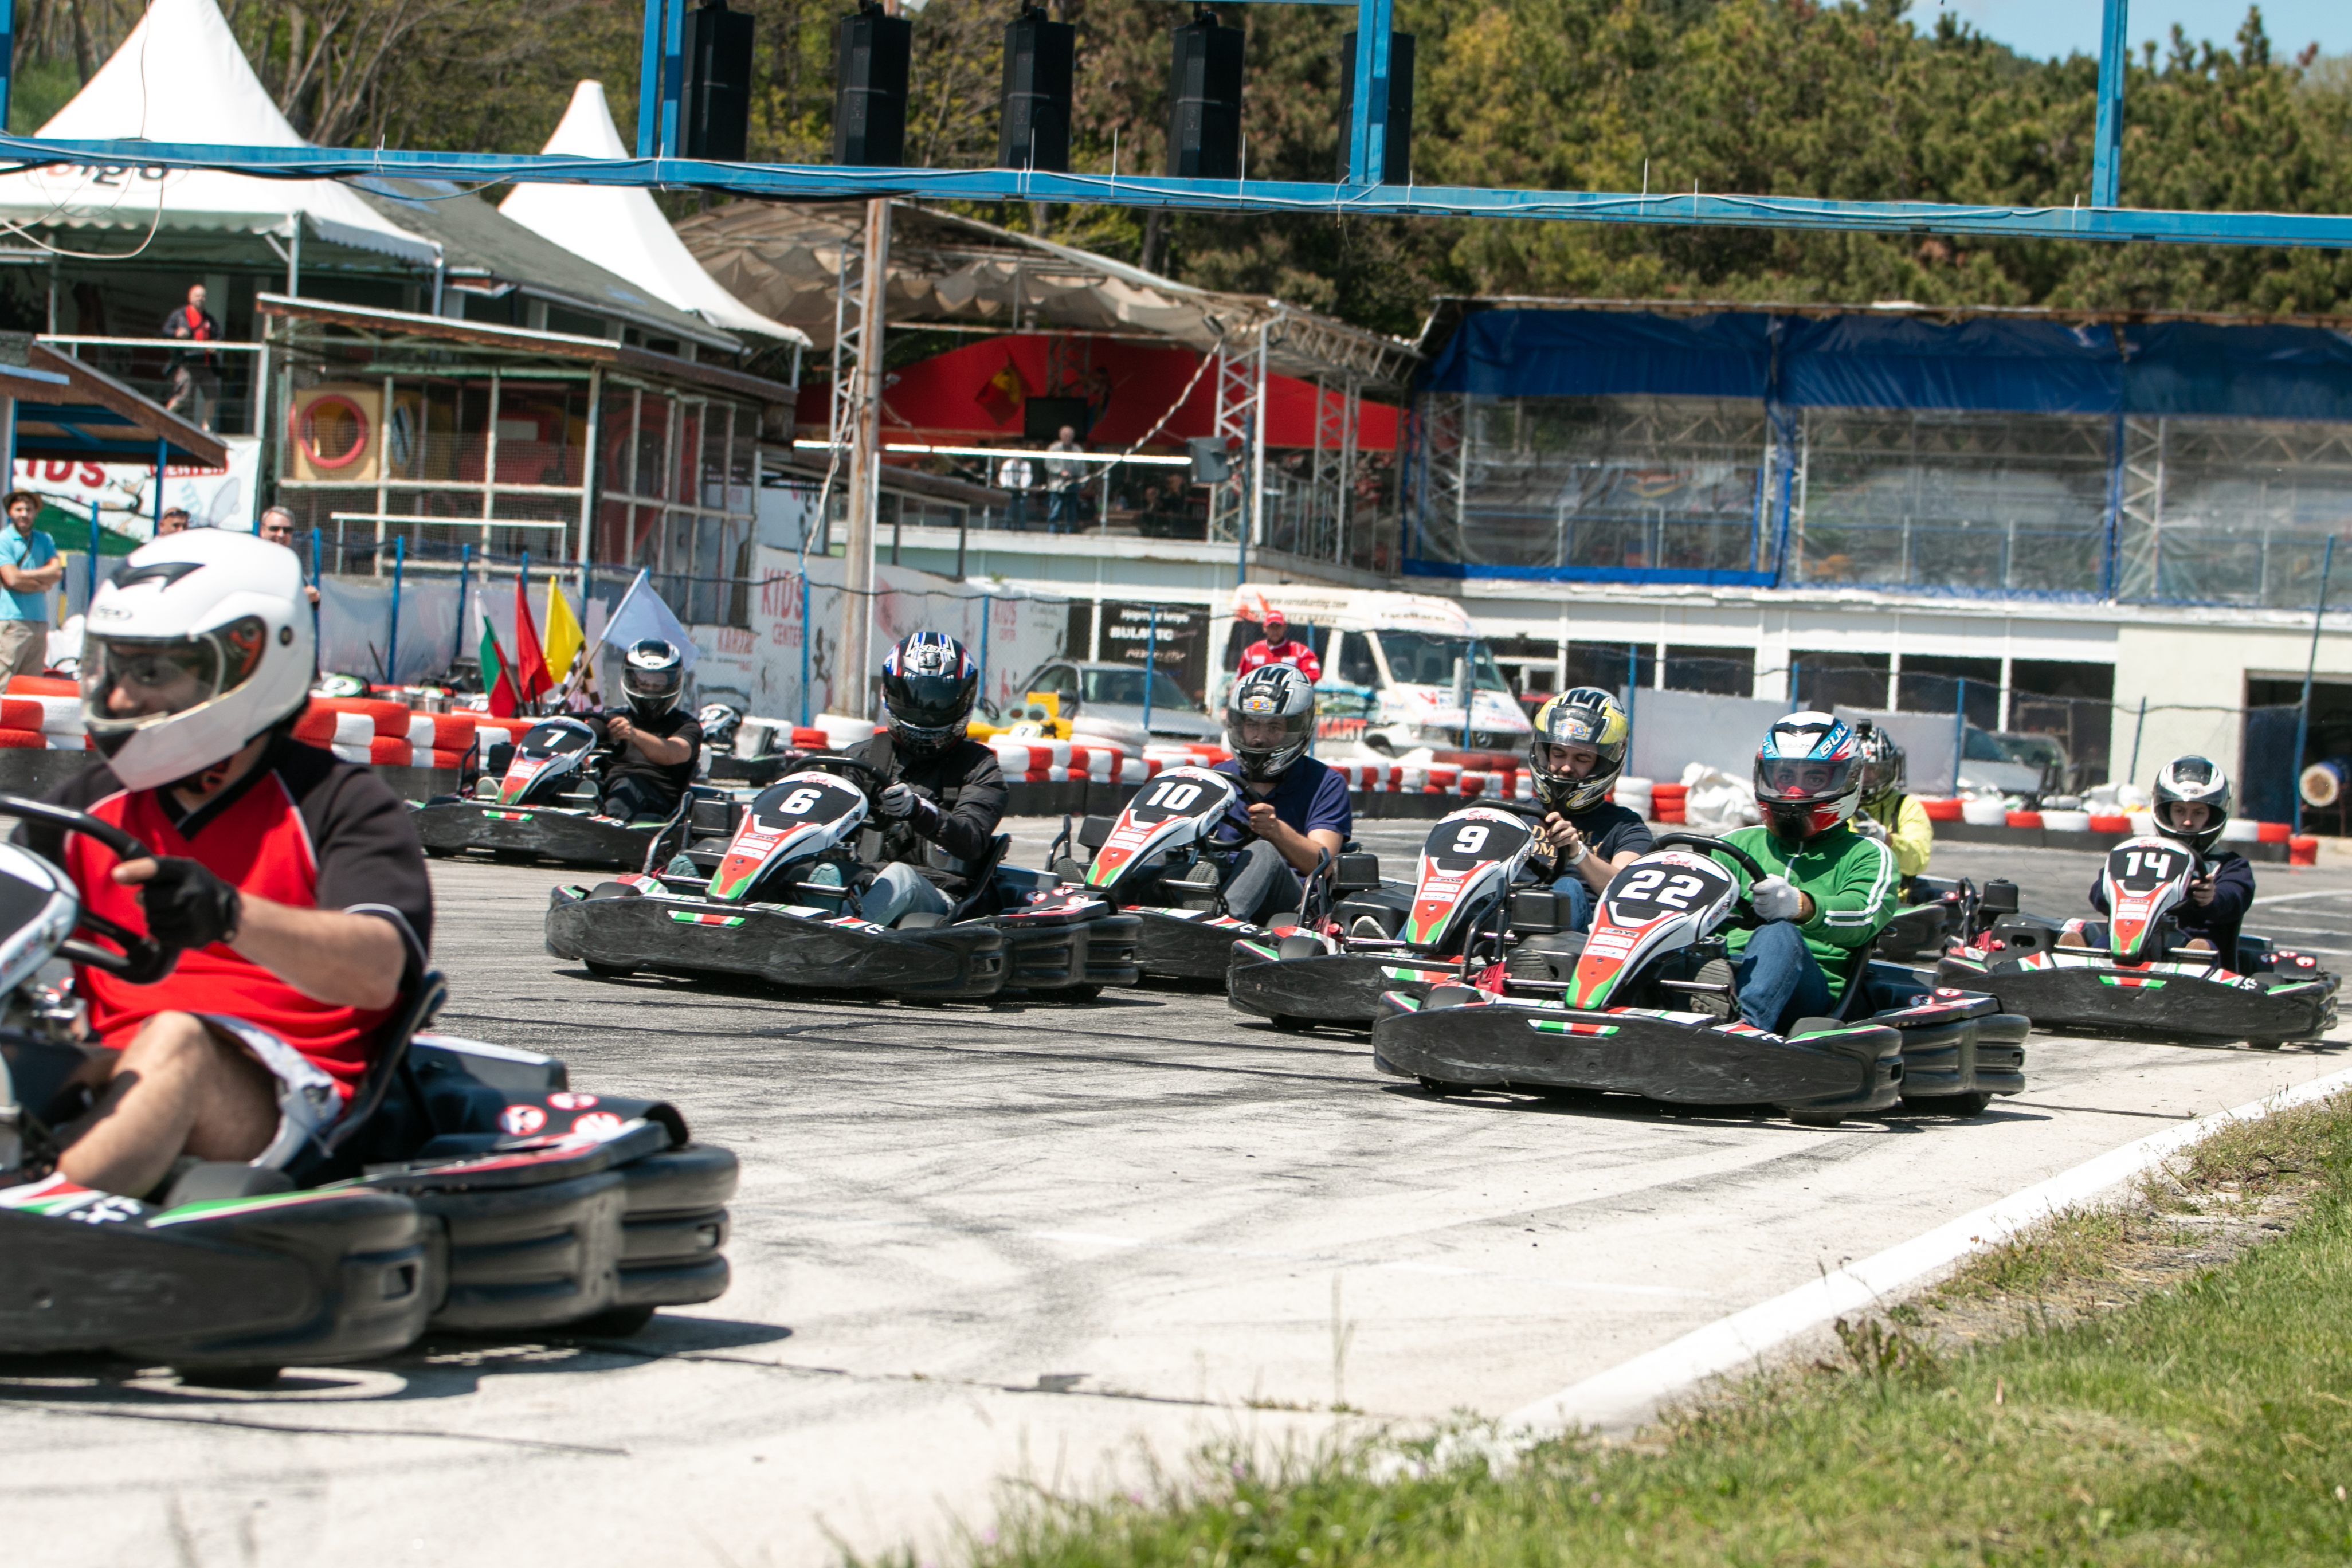 race-karting-senna-varnakarting